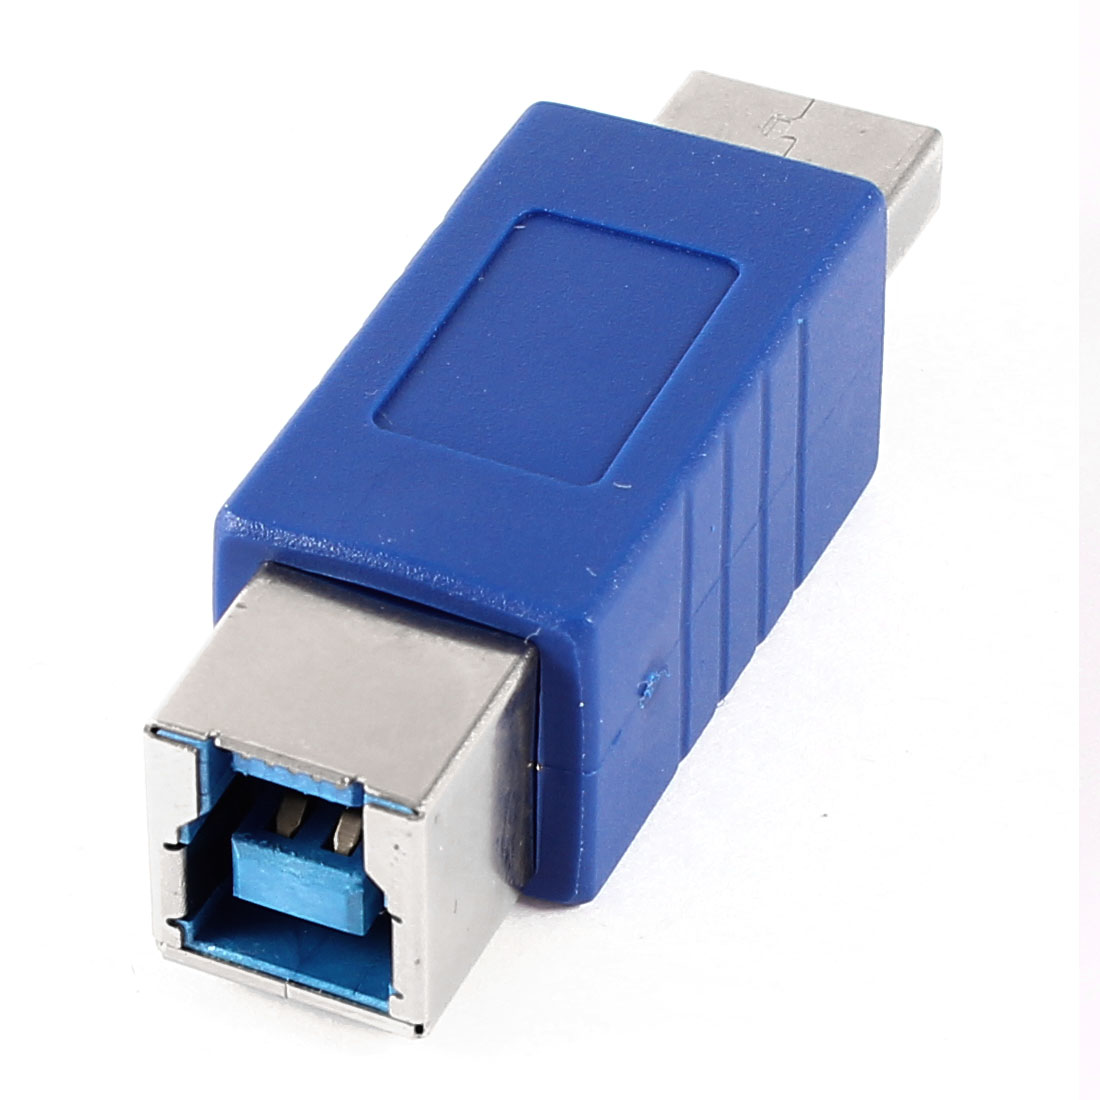 A-USB3AM3BF: USB 3.0 A Male to B Female Adapter - Blue